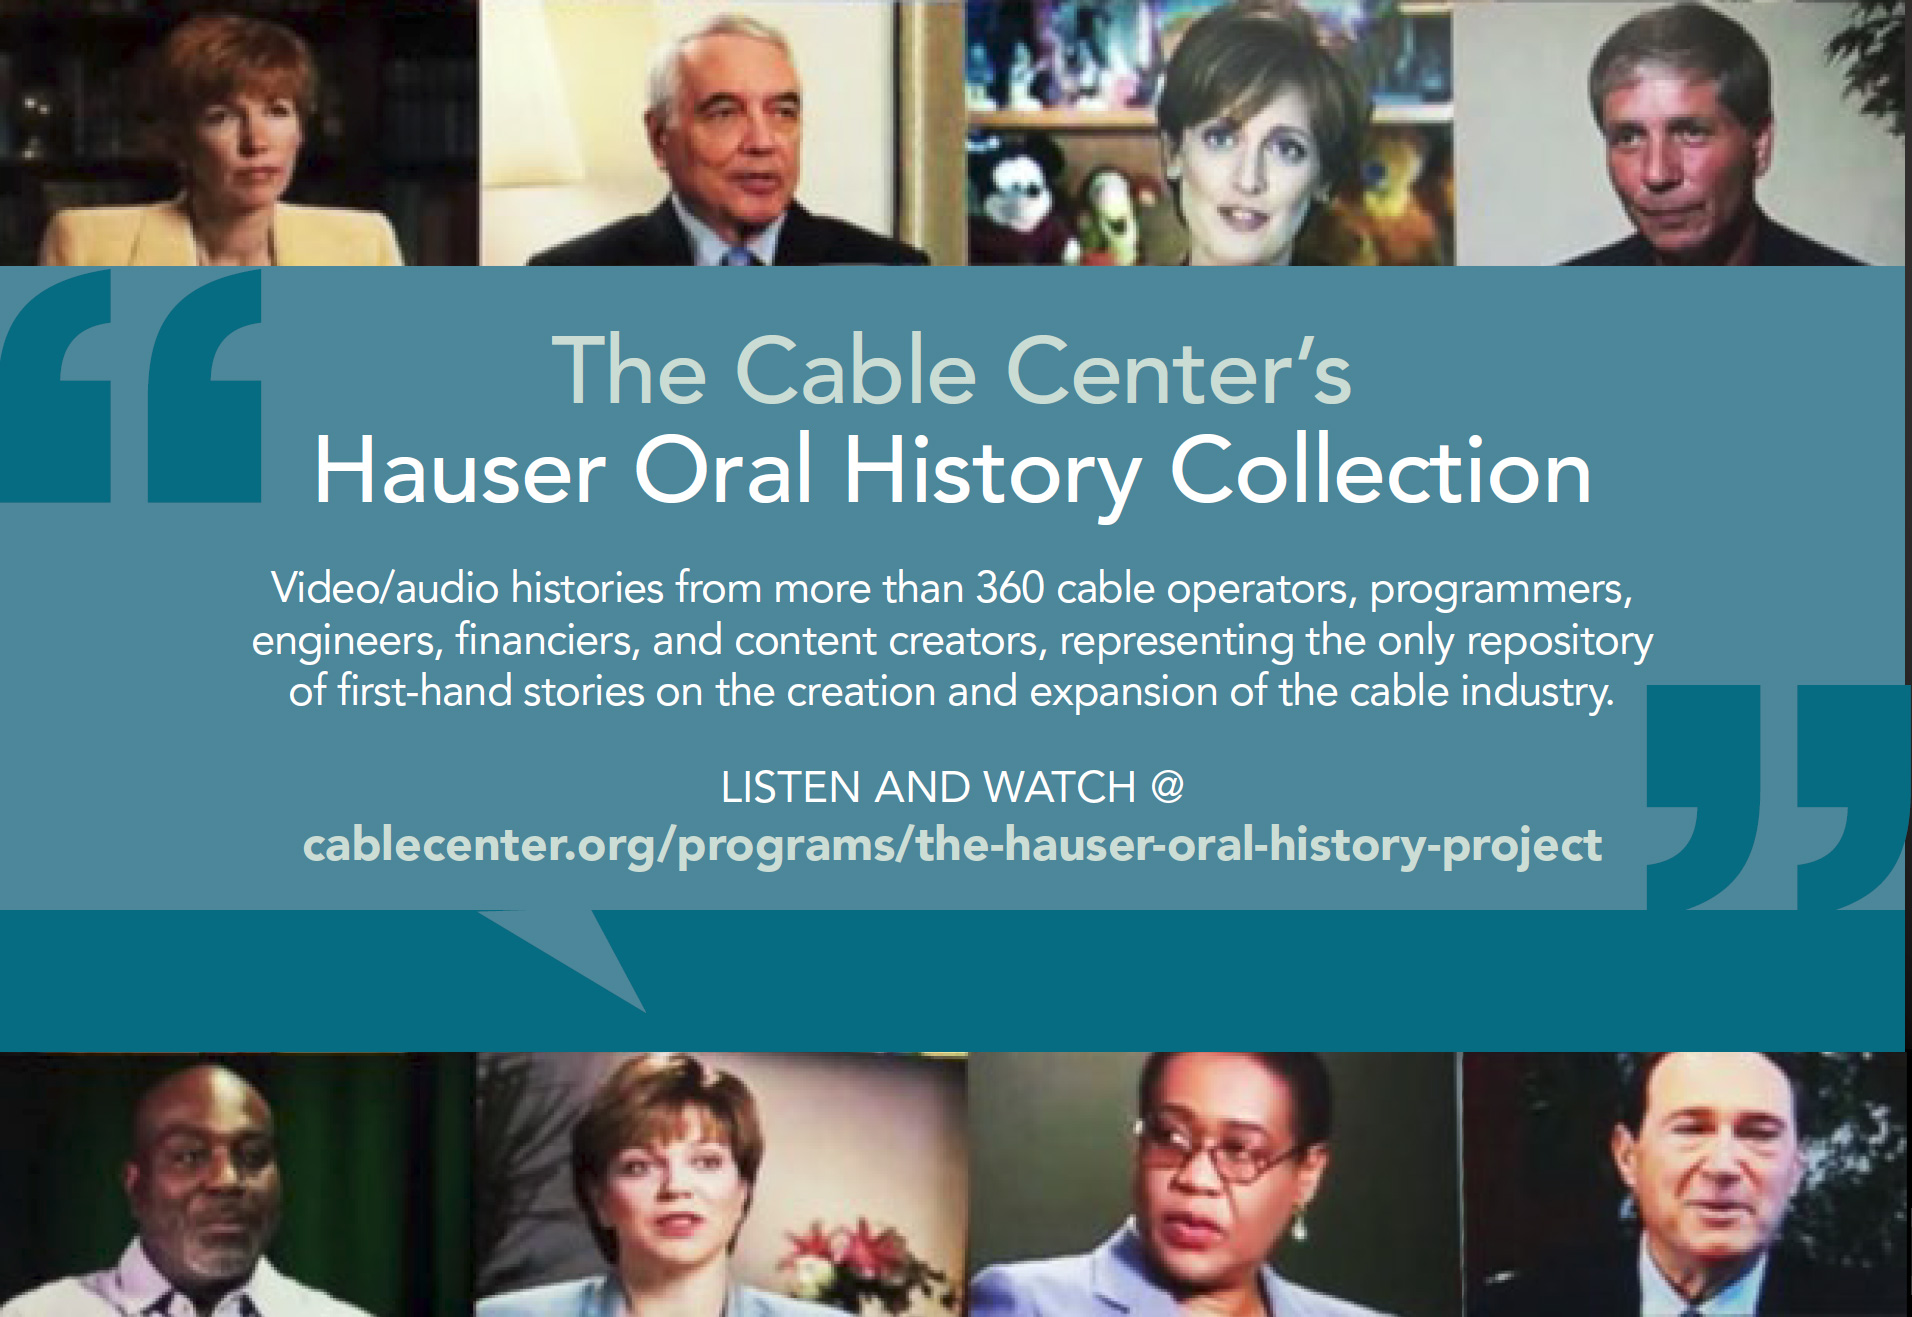 A collage of recorded histories by icons in the cable and media industry